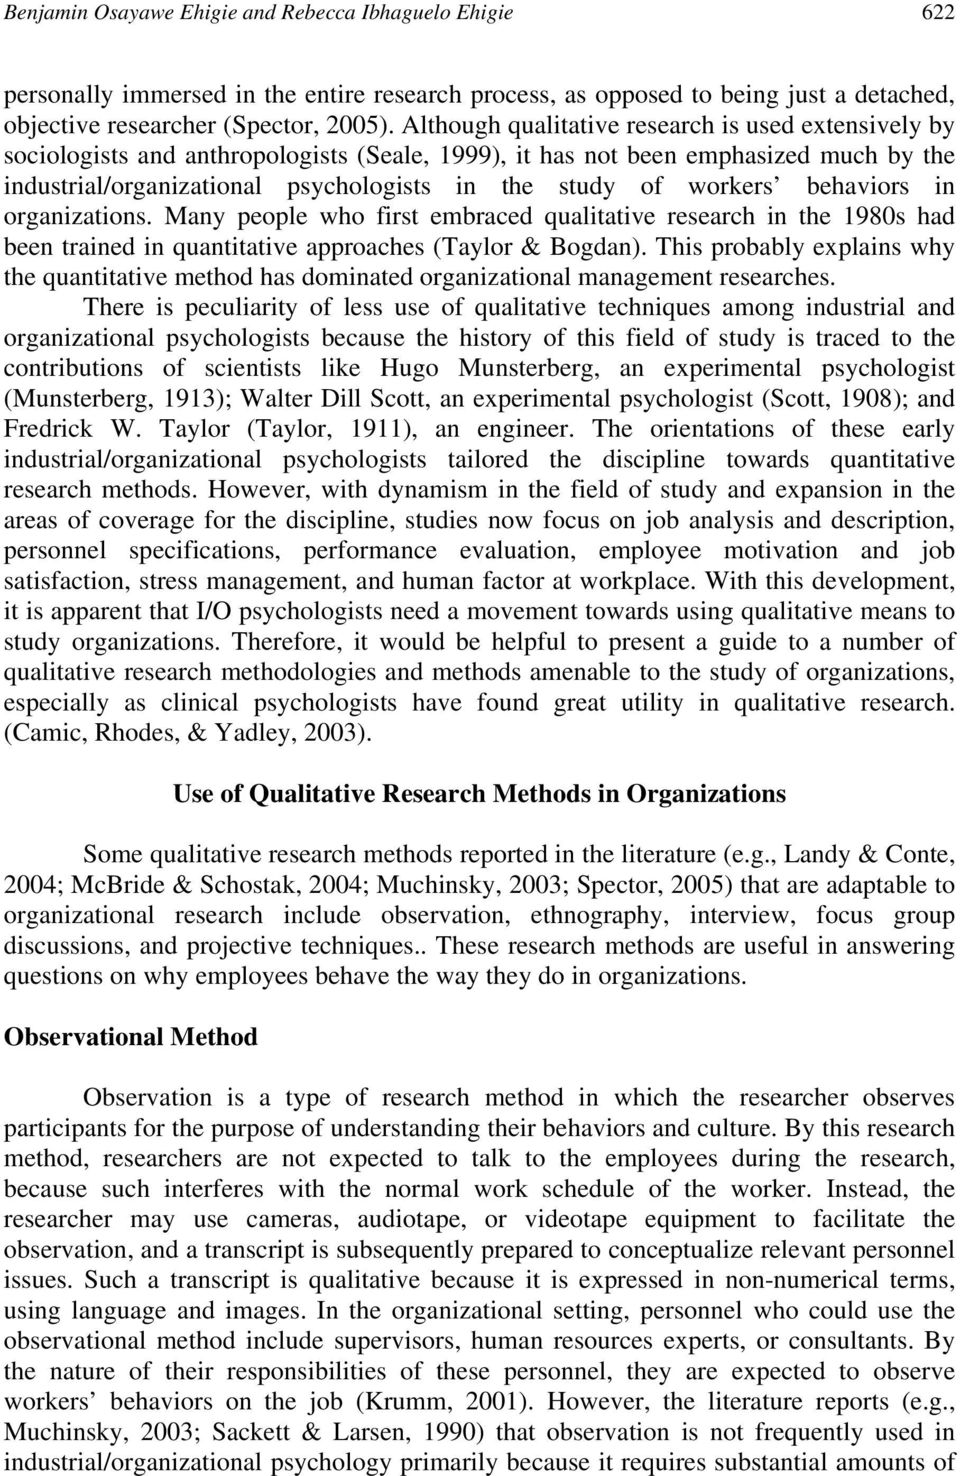 workers behaviors in organizations. Many people who first embraced qualitative research in the 1980s had been trained in quantitative approaches (Taylor & Bogdan).